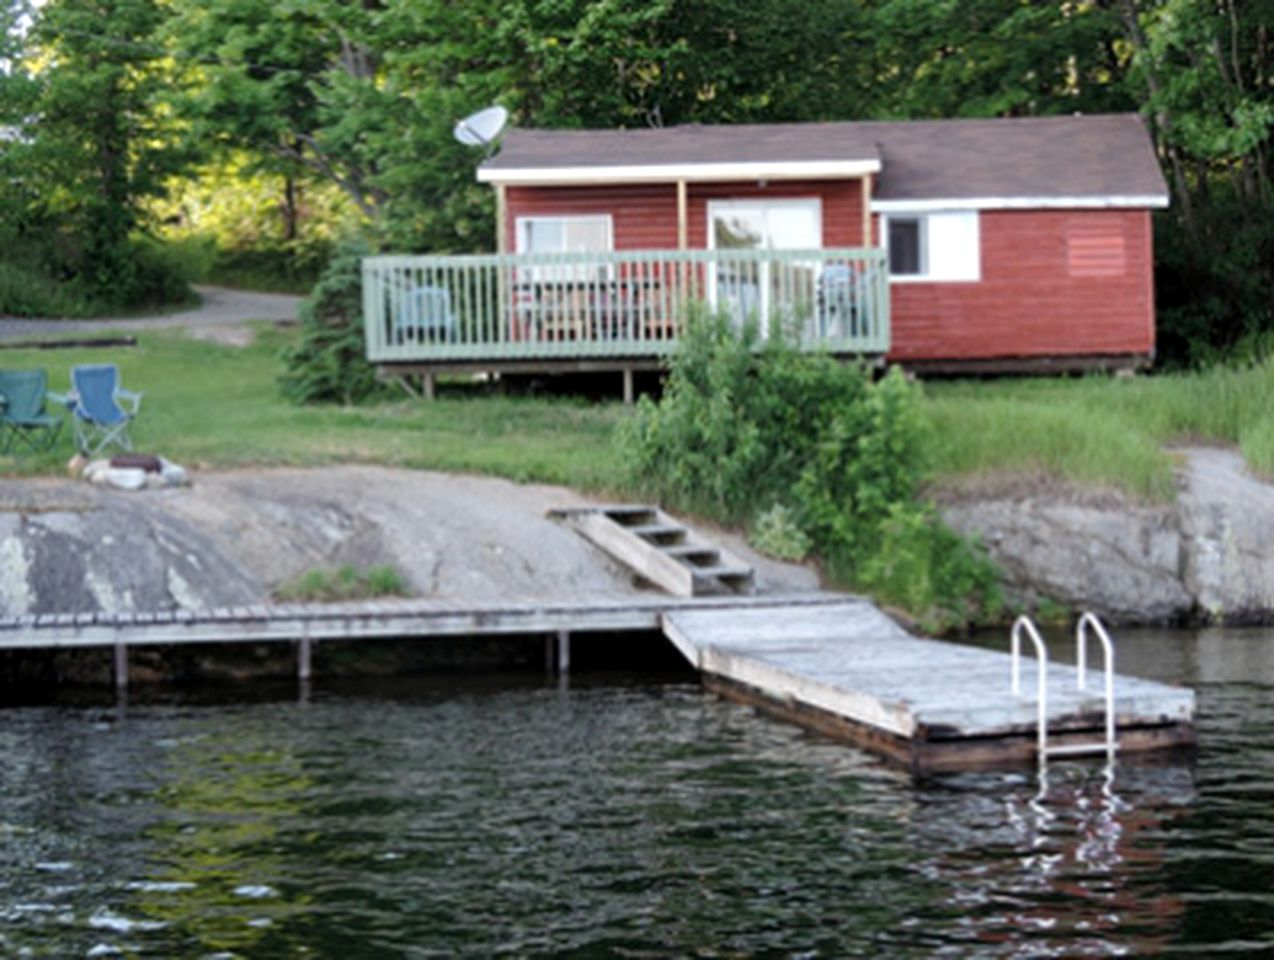 Outside of one of the best Ontario cottage rentals with hot tub facilities